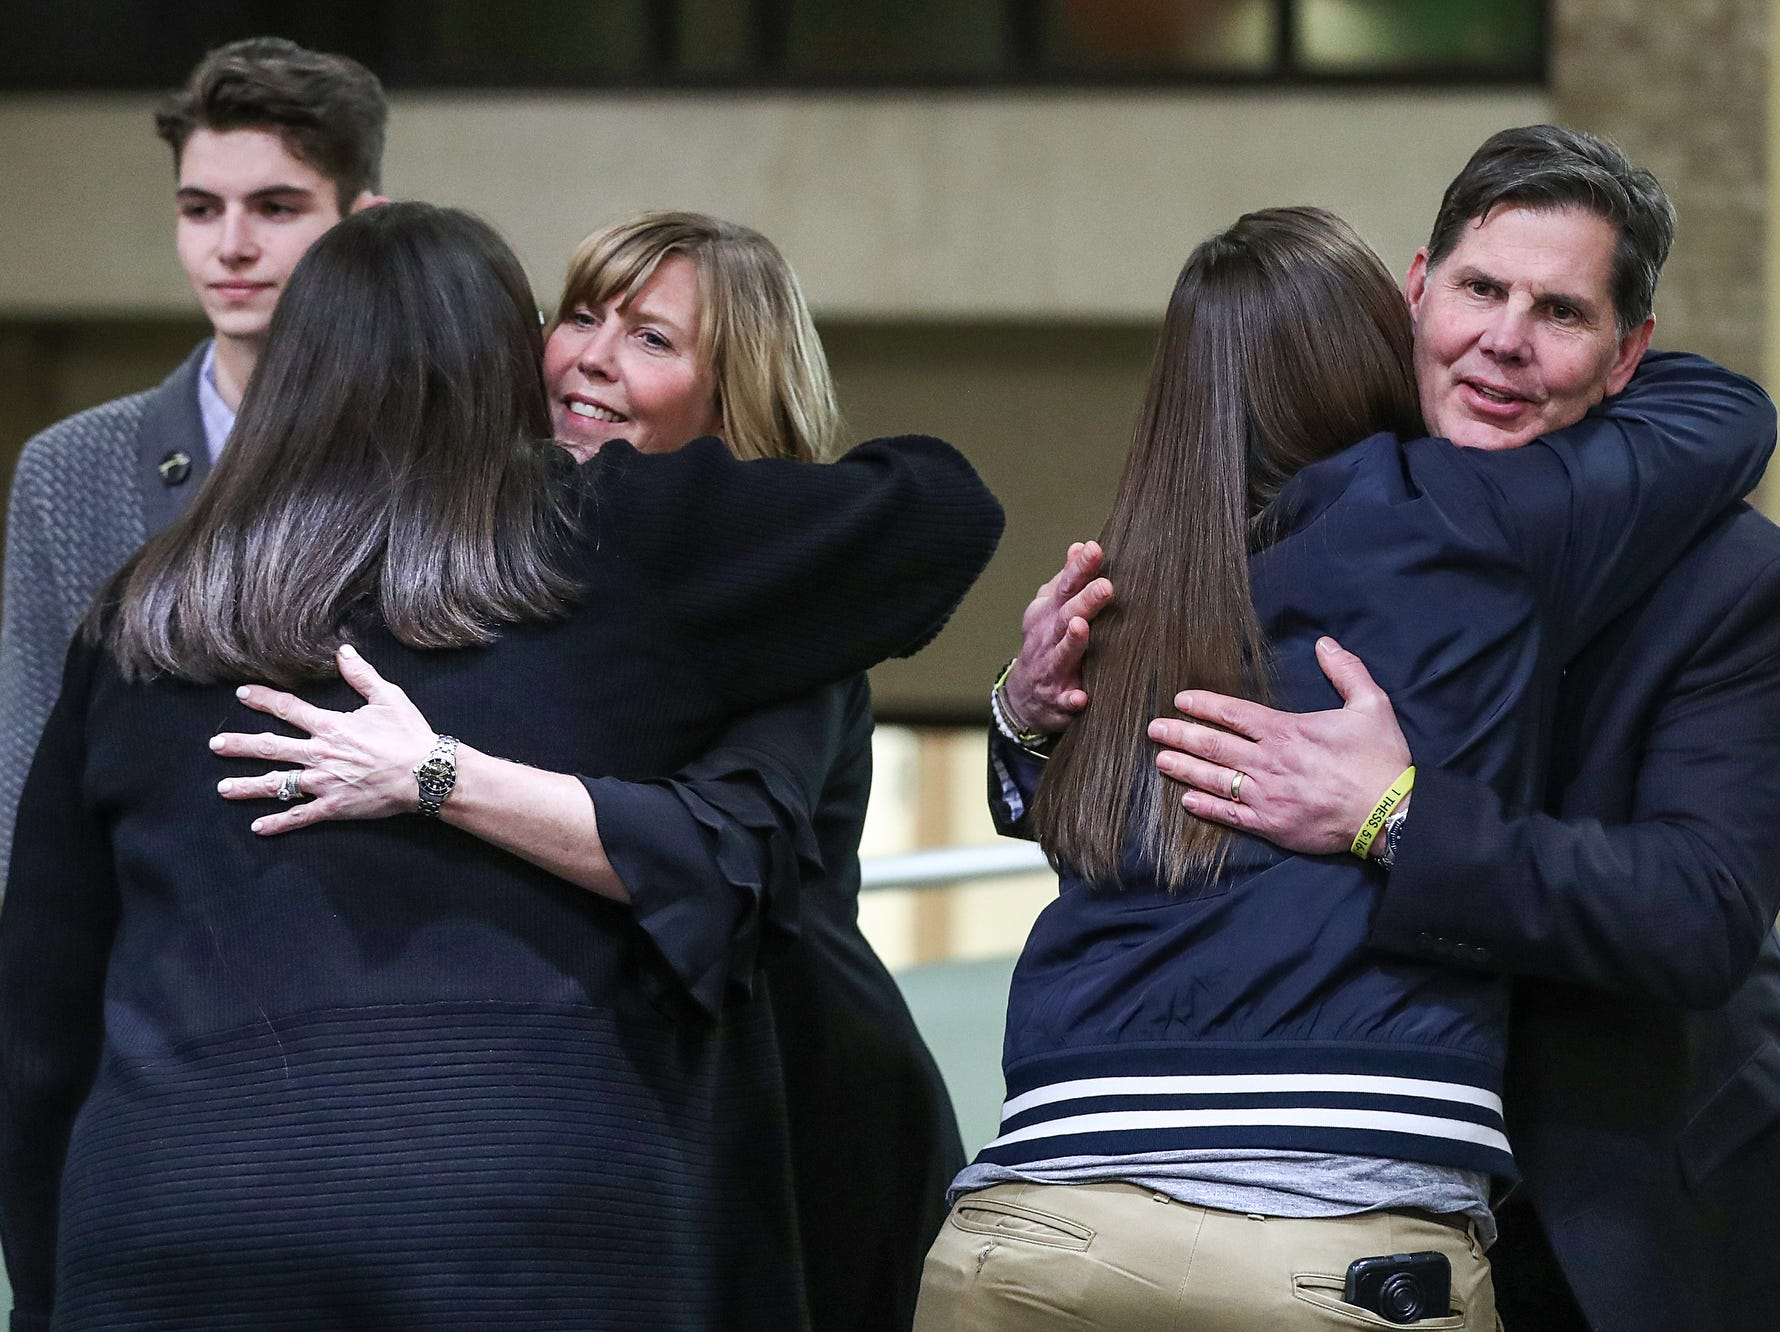 From left, Kelly and Tony Trent are hugged by well-wishers after the funeral for their son, former Purdue student and superfan Tyler Trent, at College Park Church in Indianapolis, Tuesday, Jan. 8, 2019. The 20-year-old died of a rare form of bone cancer on Jan. 1, 2019.